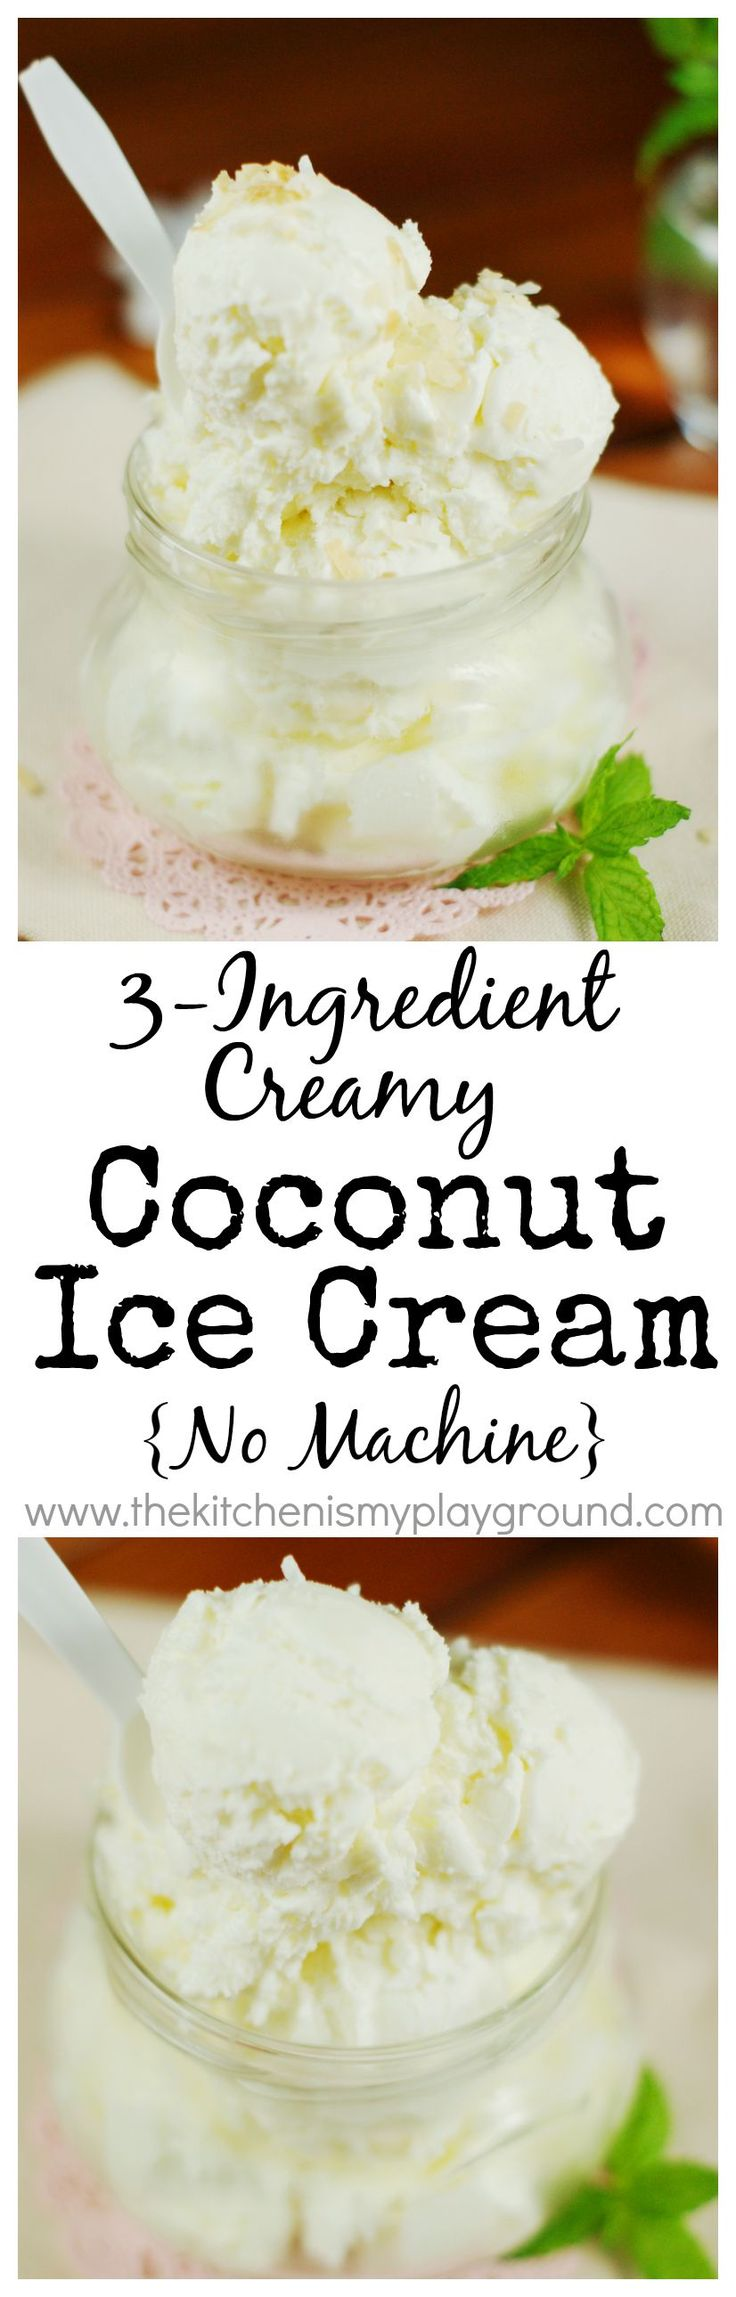 (Change the heavy whipping cream to something dairy-free and this is pretty IBS friendly!) 3-Ingredient Creamy Coconut Ice Cream ... with no machine needed! www.thekitchenismyplayground.com